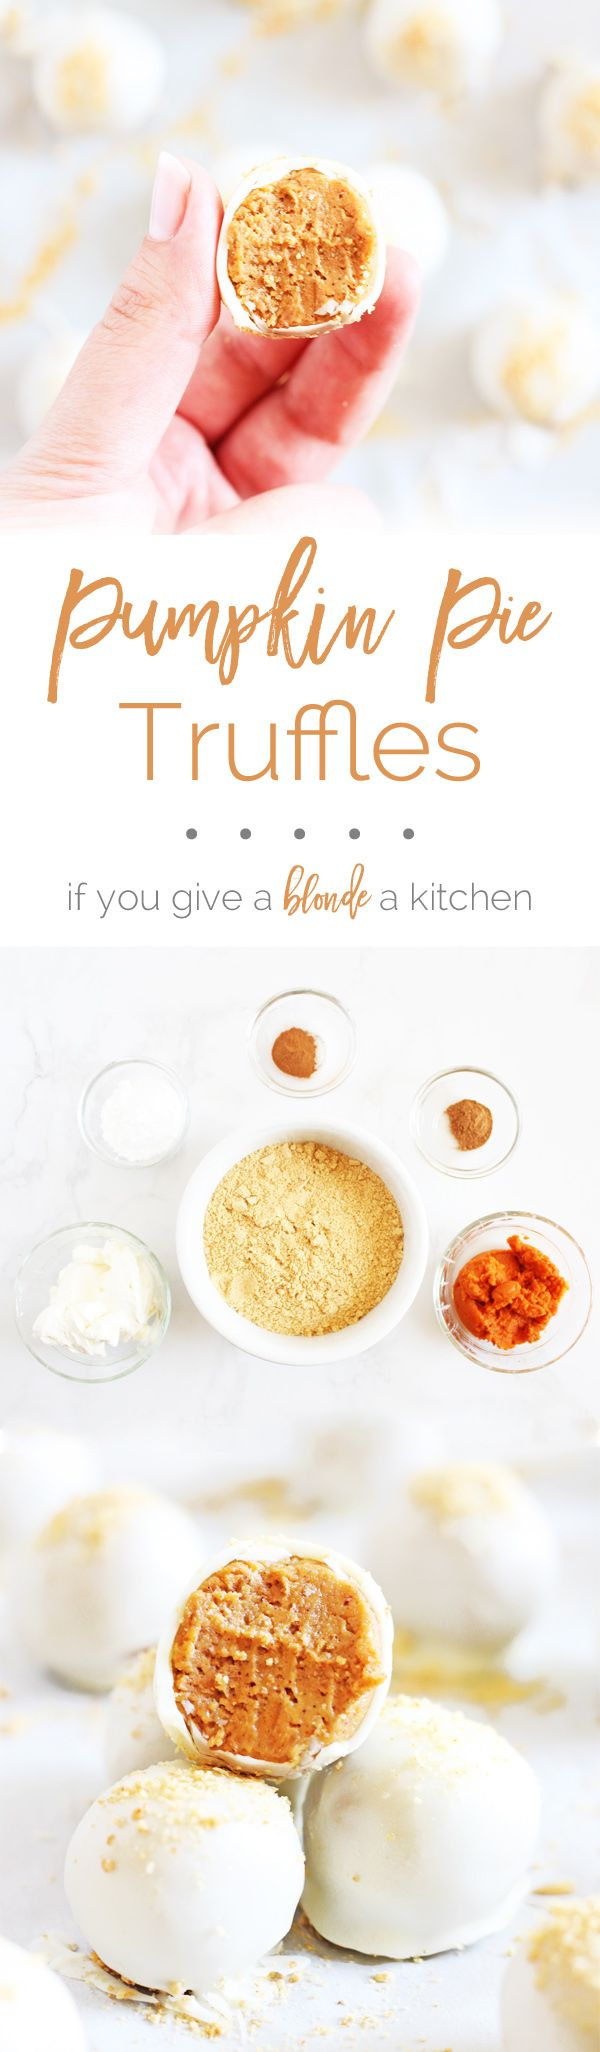 No bake pumpkin pie truffles are made with cream cheese and pumpkin pie spice. Recipe comes with a how-to video!   www.ifyougiveablondeakitchen.com